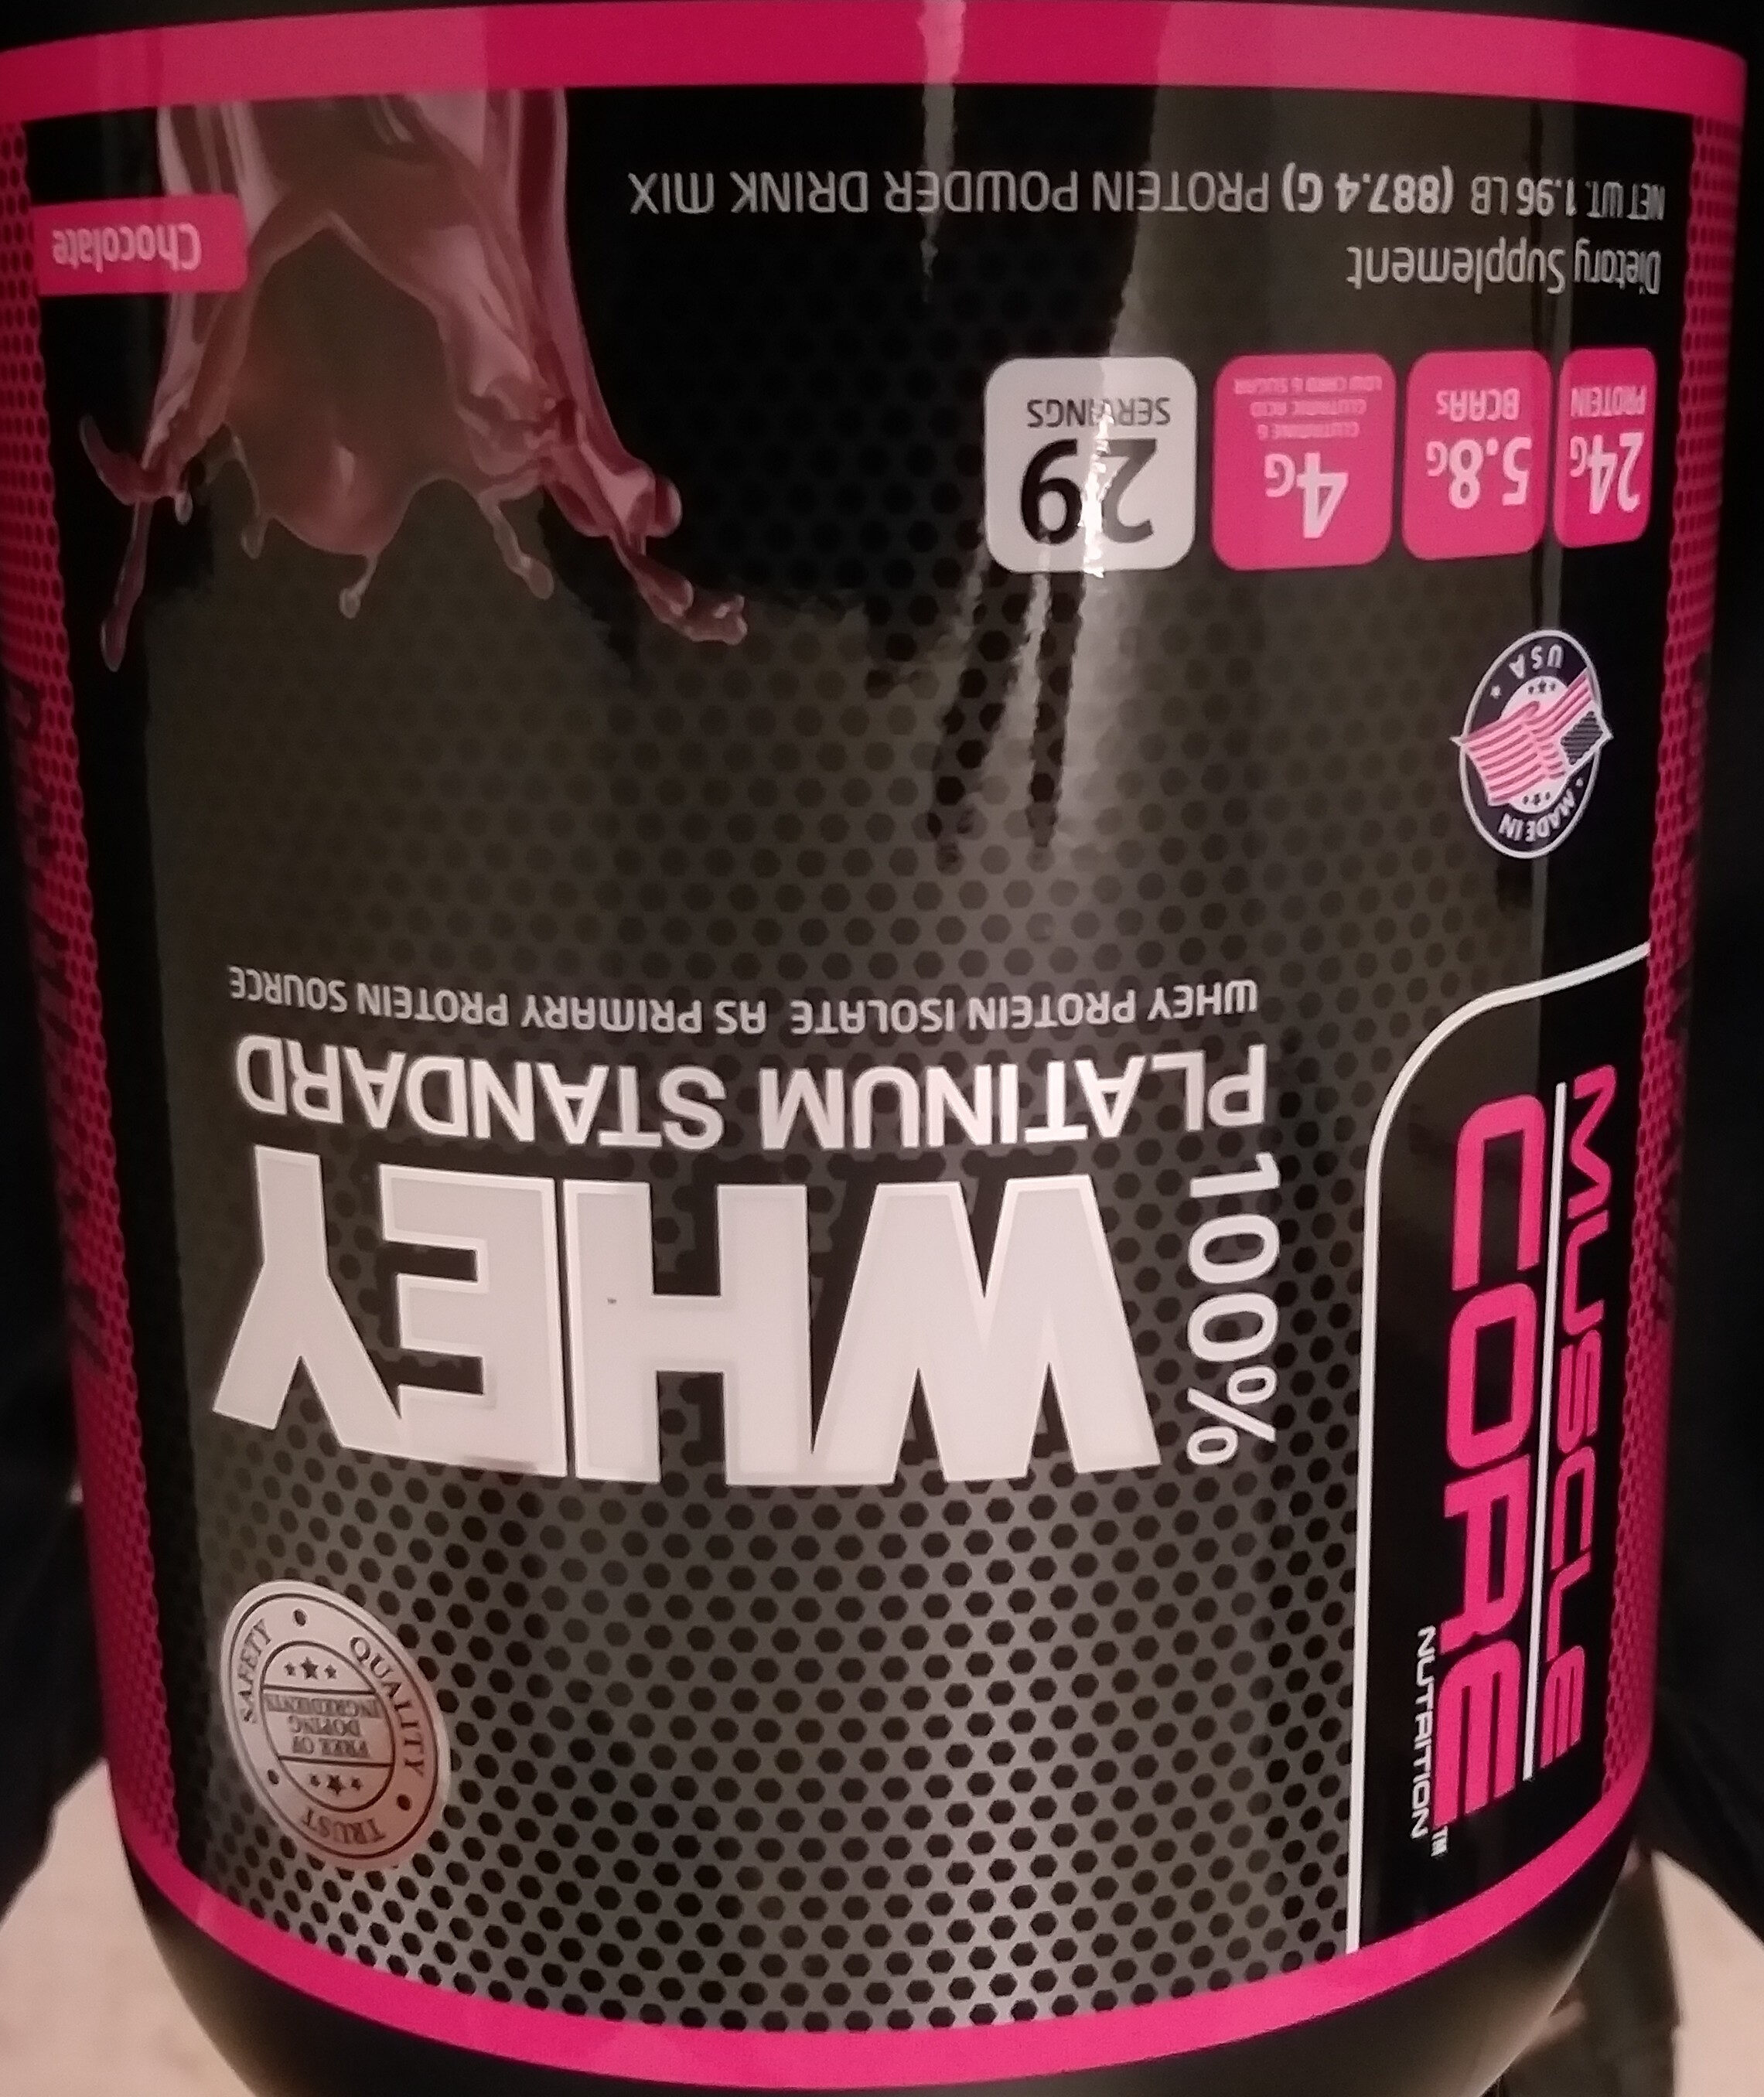 100% Whey platinum standard - Product